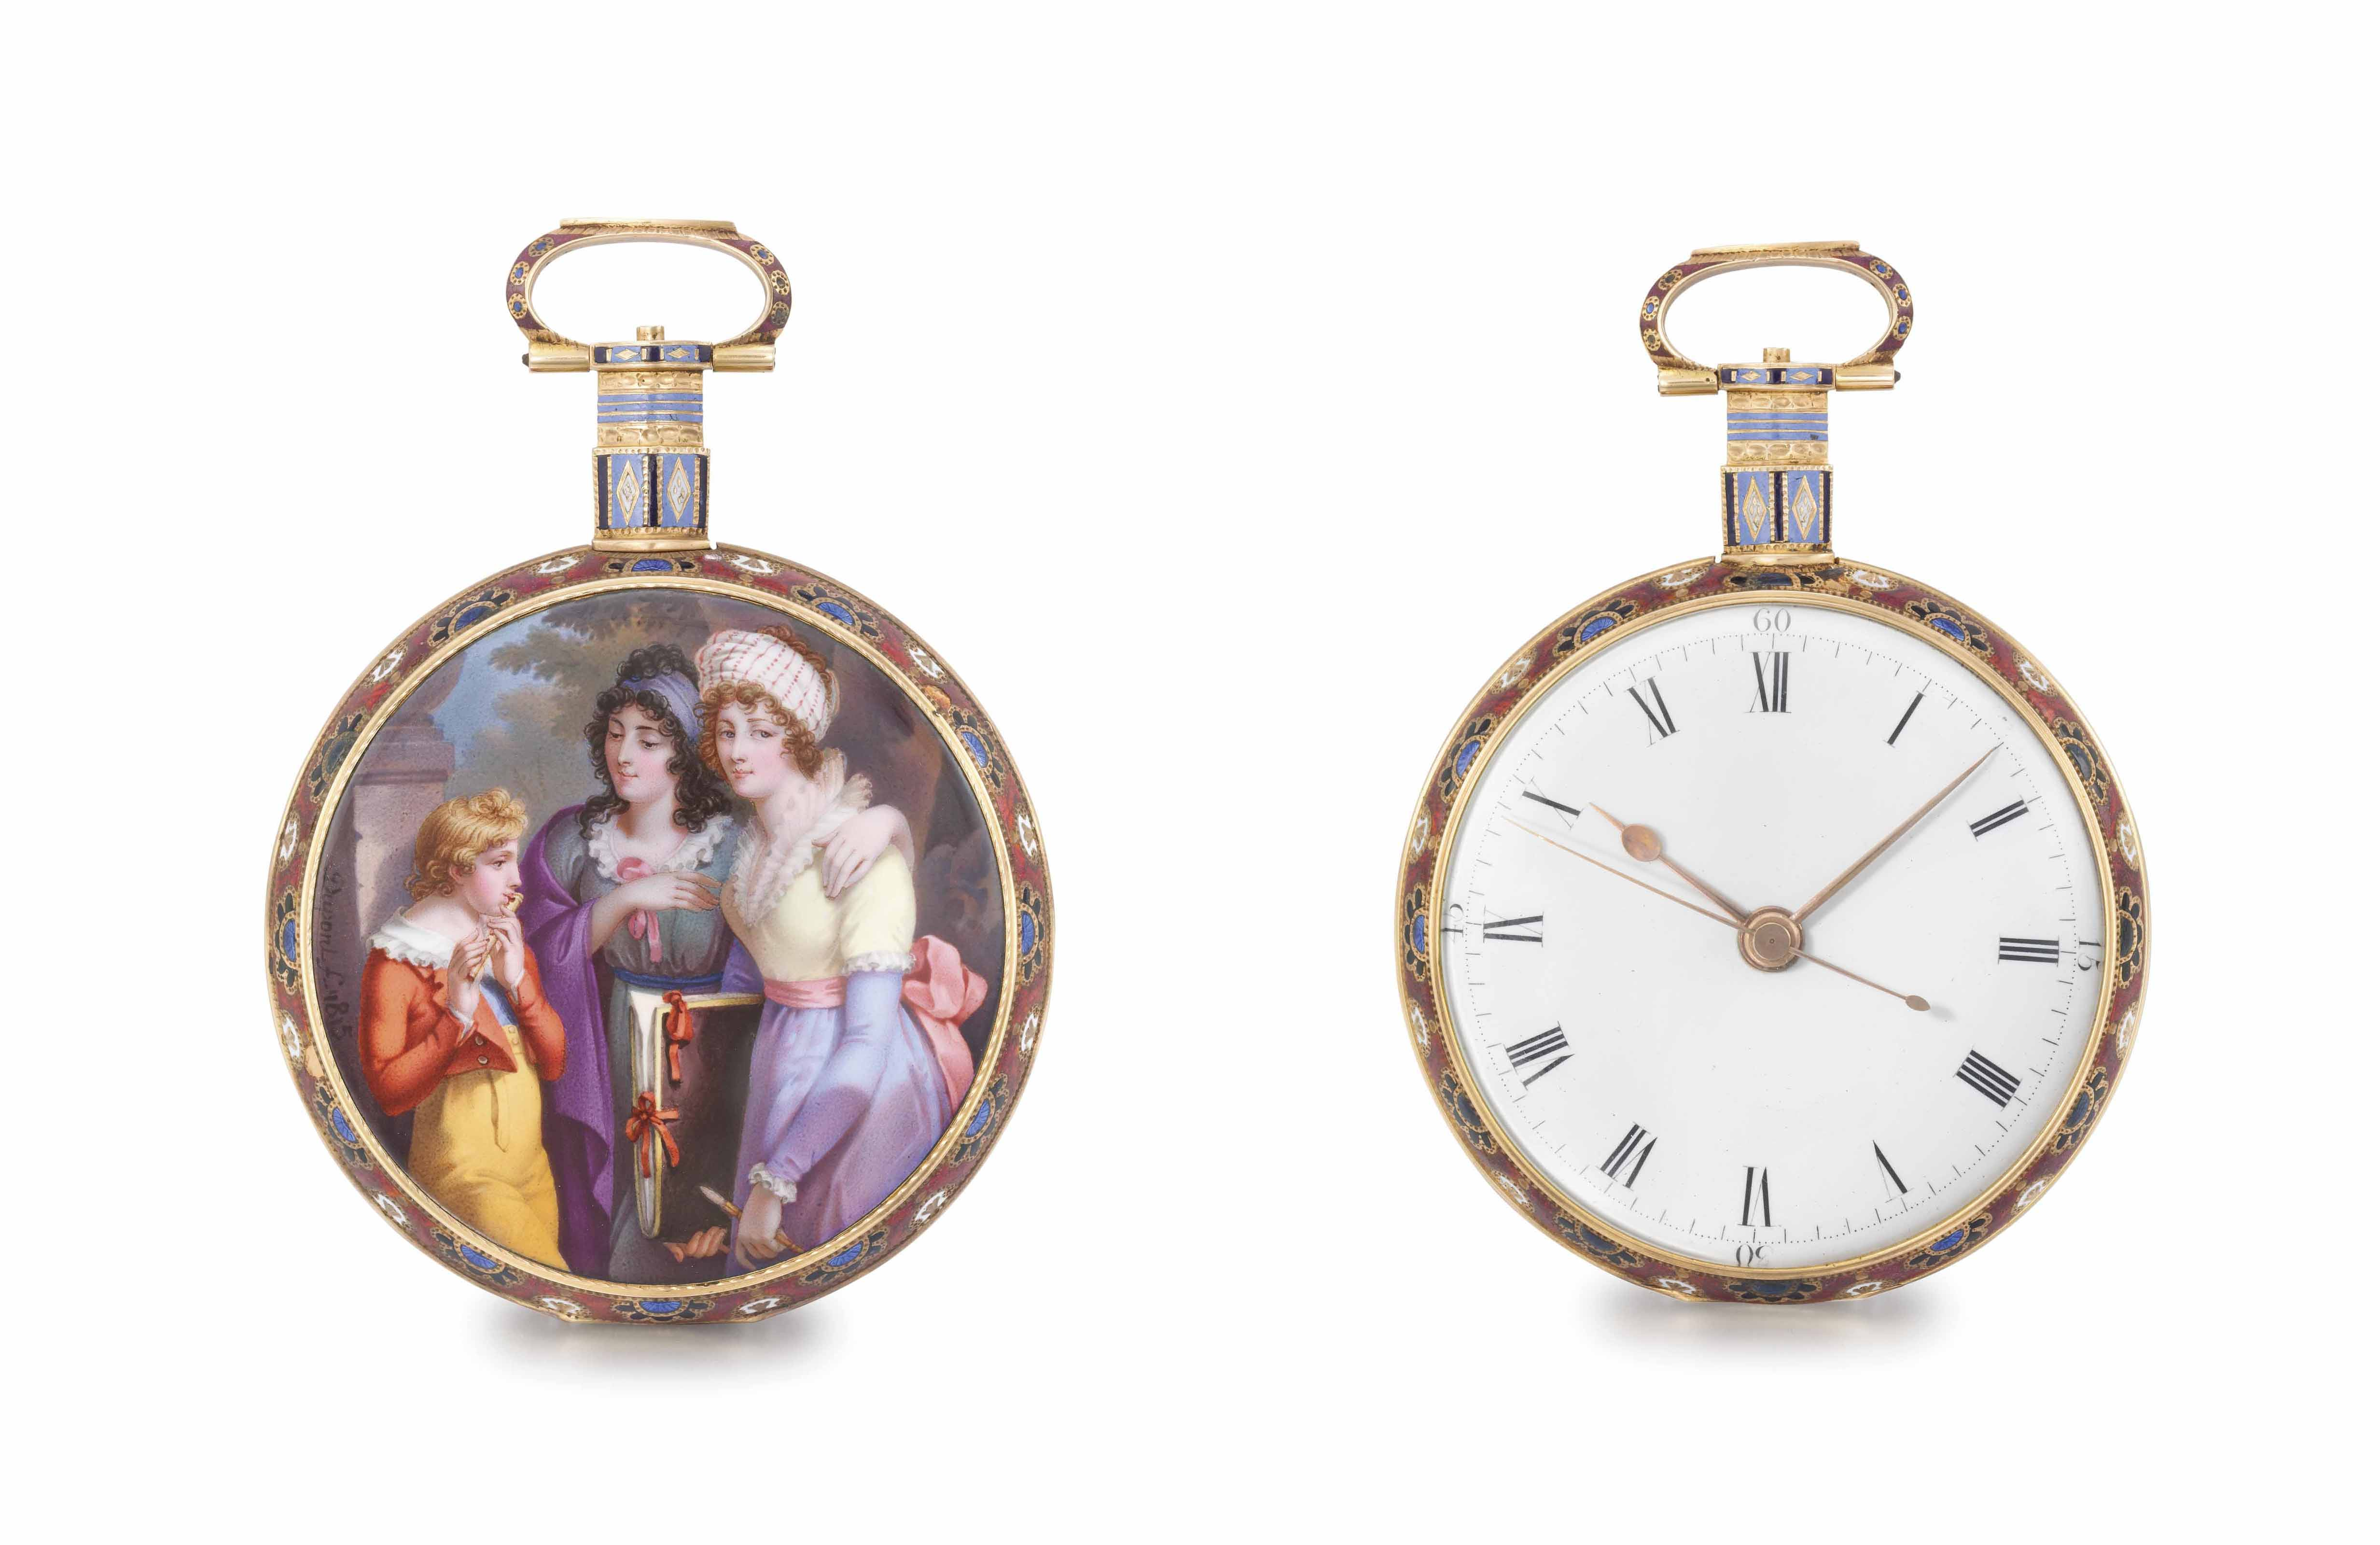 William Ilbery. An exceptional 18K gold and enamel openface centre seconds duplex watch with enamel by Jean-François-Victor Dupont, made for the Chinese market